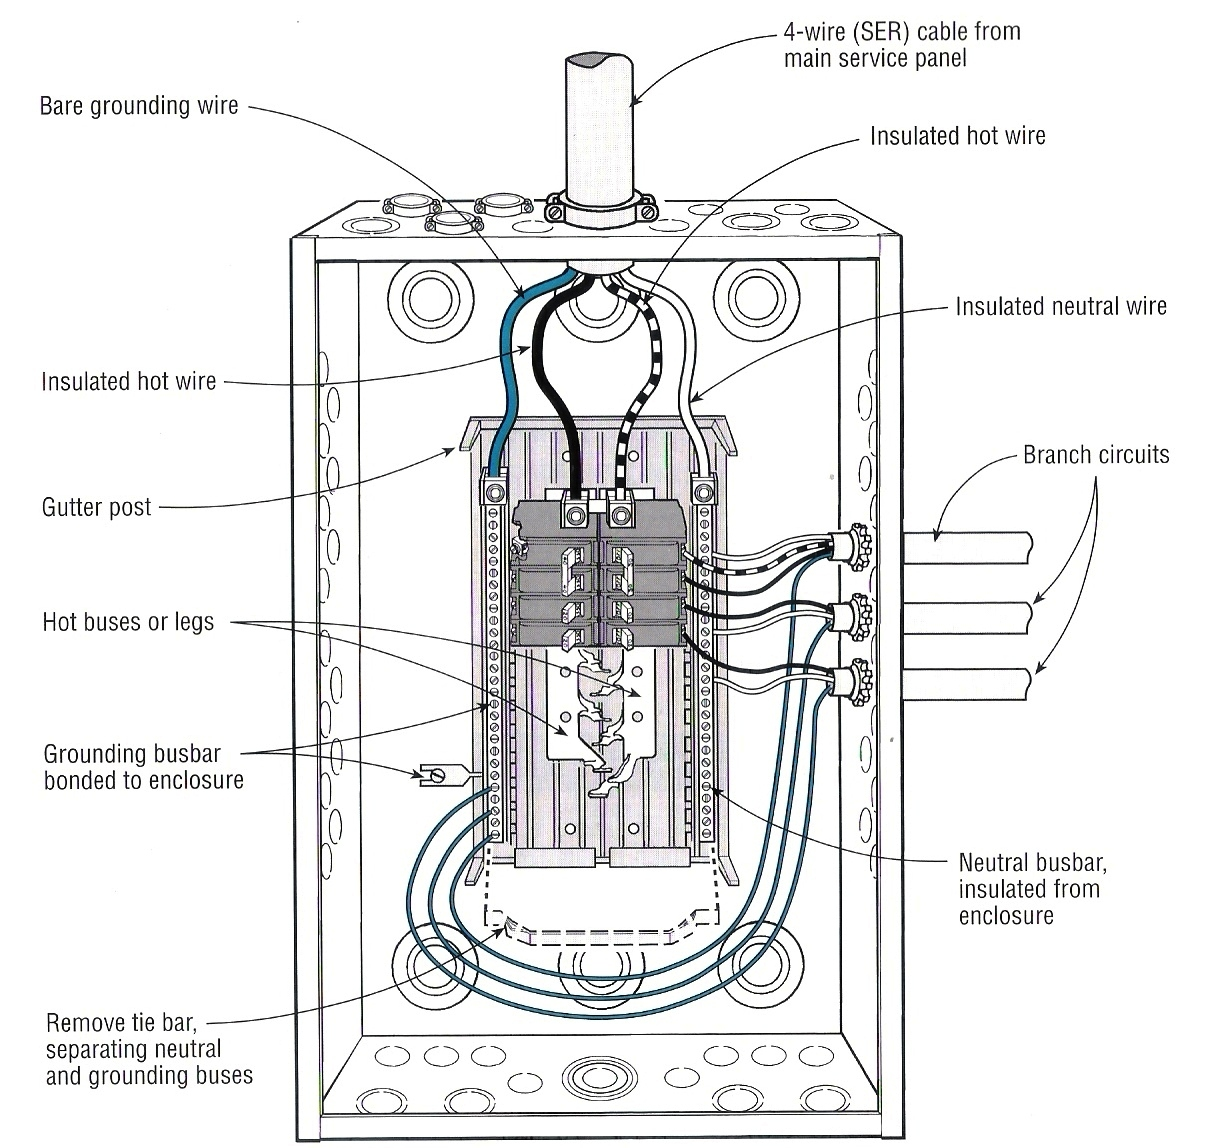 rv 30 sub panel wiring diagram  rv  free engine image for